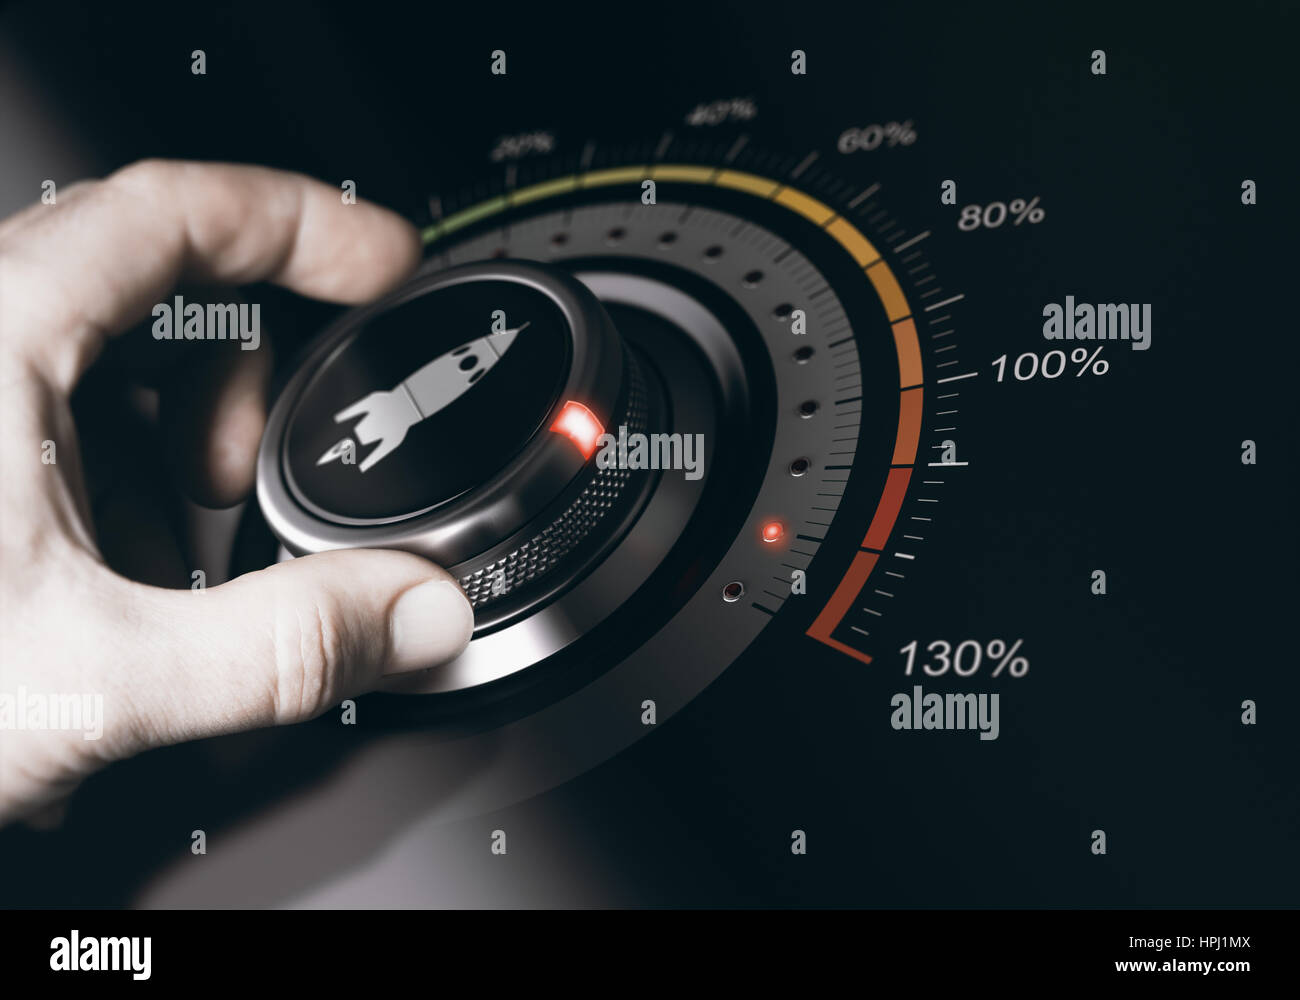 Hand turning a button with a rocket icon to the maximum acceleration. Concept of career accelerationComposite between - Stock Image